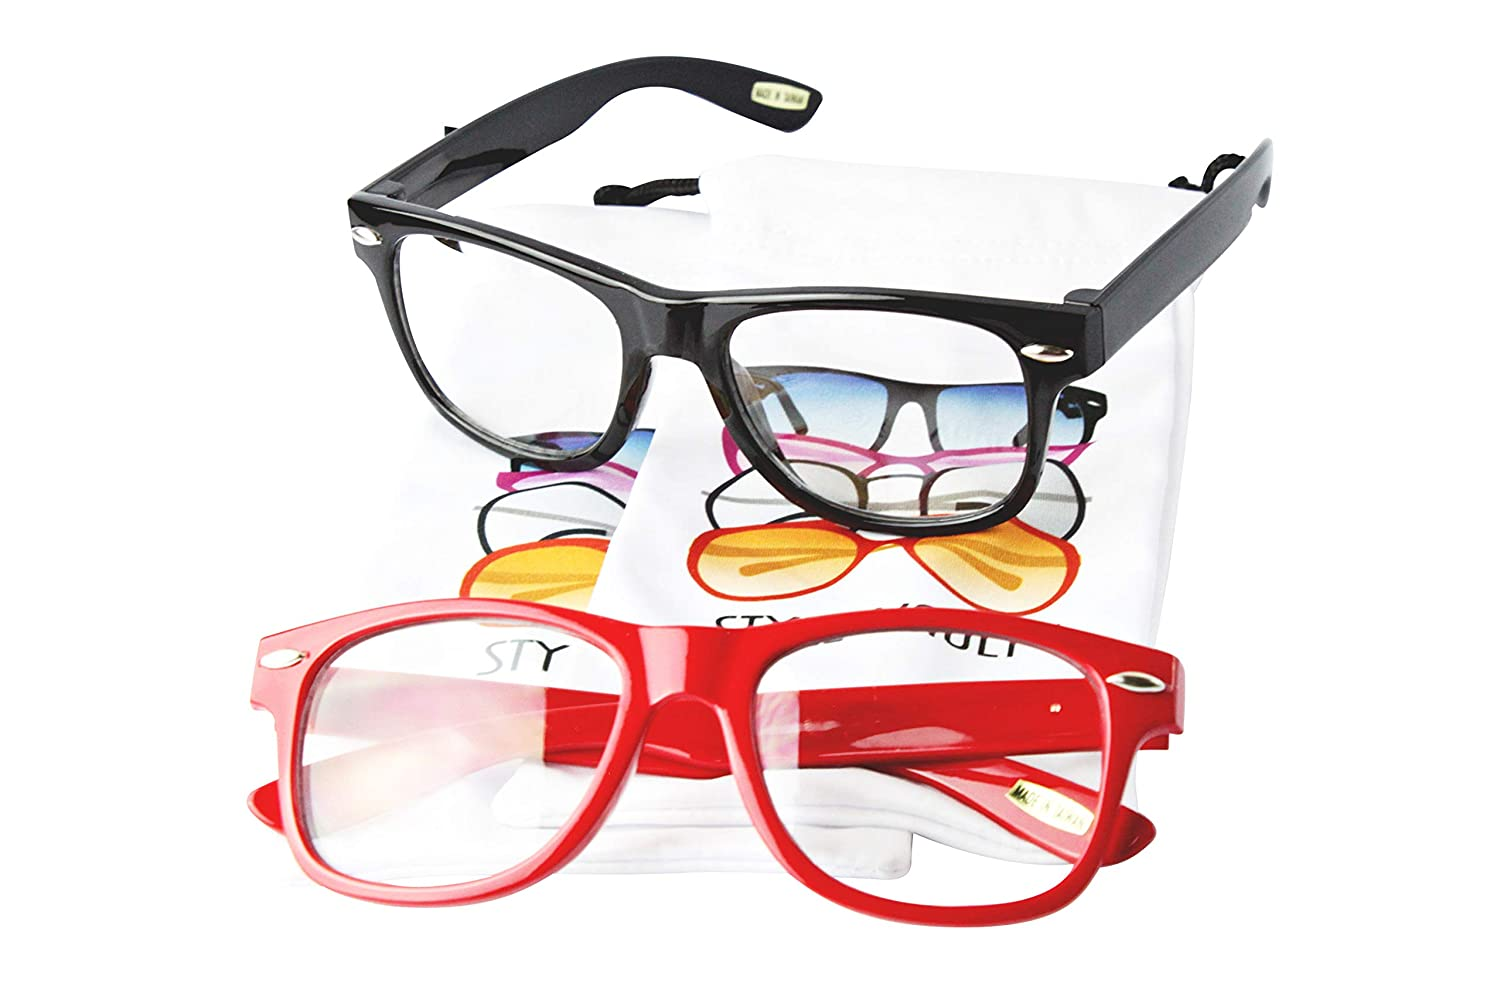 f0439c8d6b4 Amazon.com  Kd217 Kids Children Age 2~9 years Old 80s Glasses Sunglasses  (2-pack Black-clear Red-clear lens